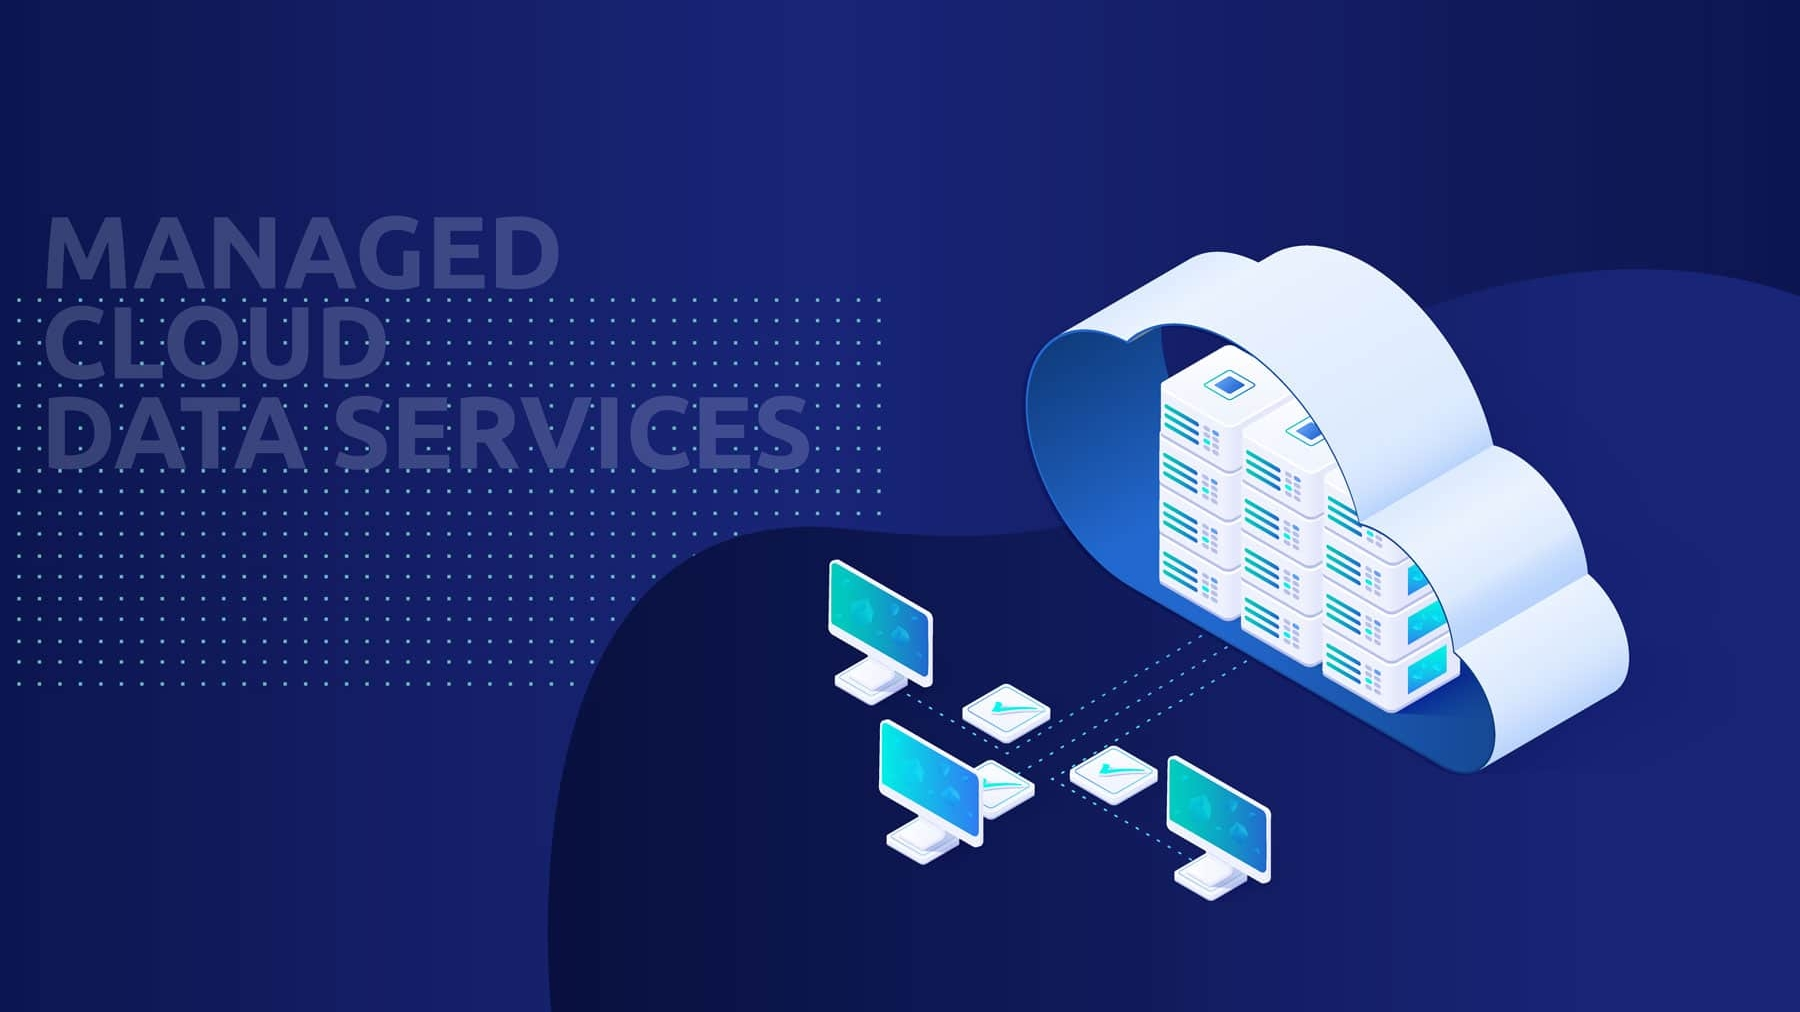 Cloud Platform - Experience on building managed cloud data services